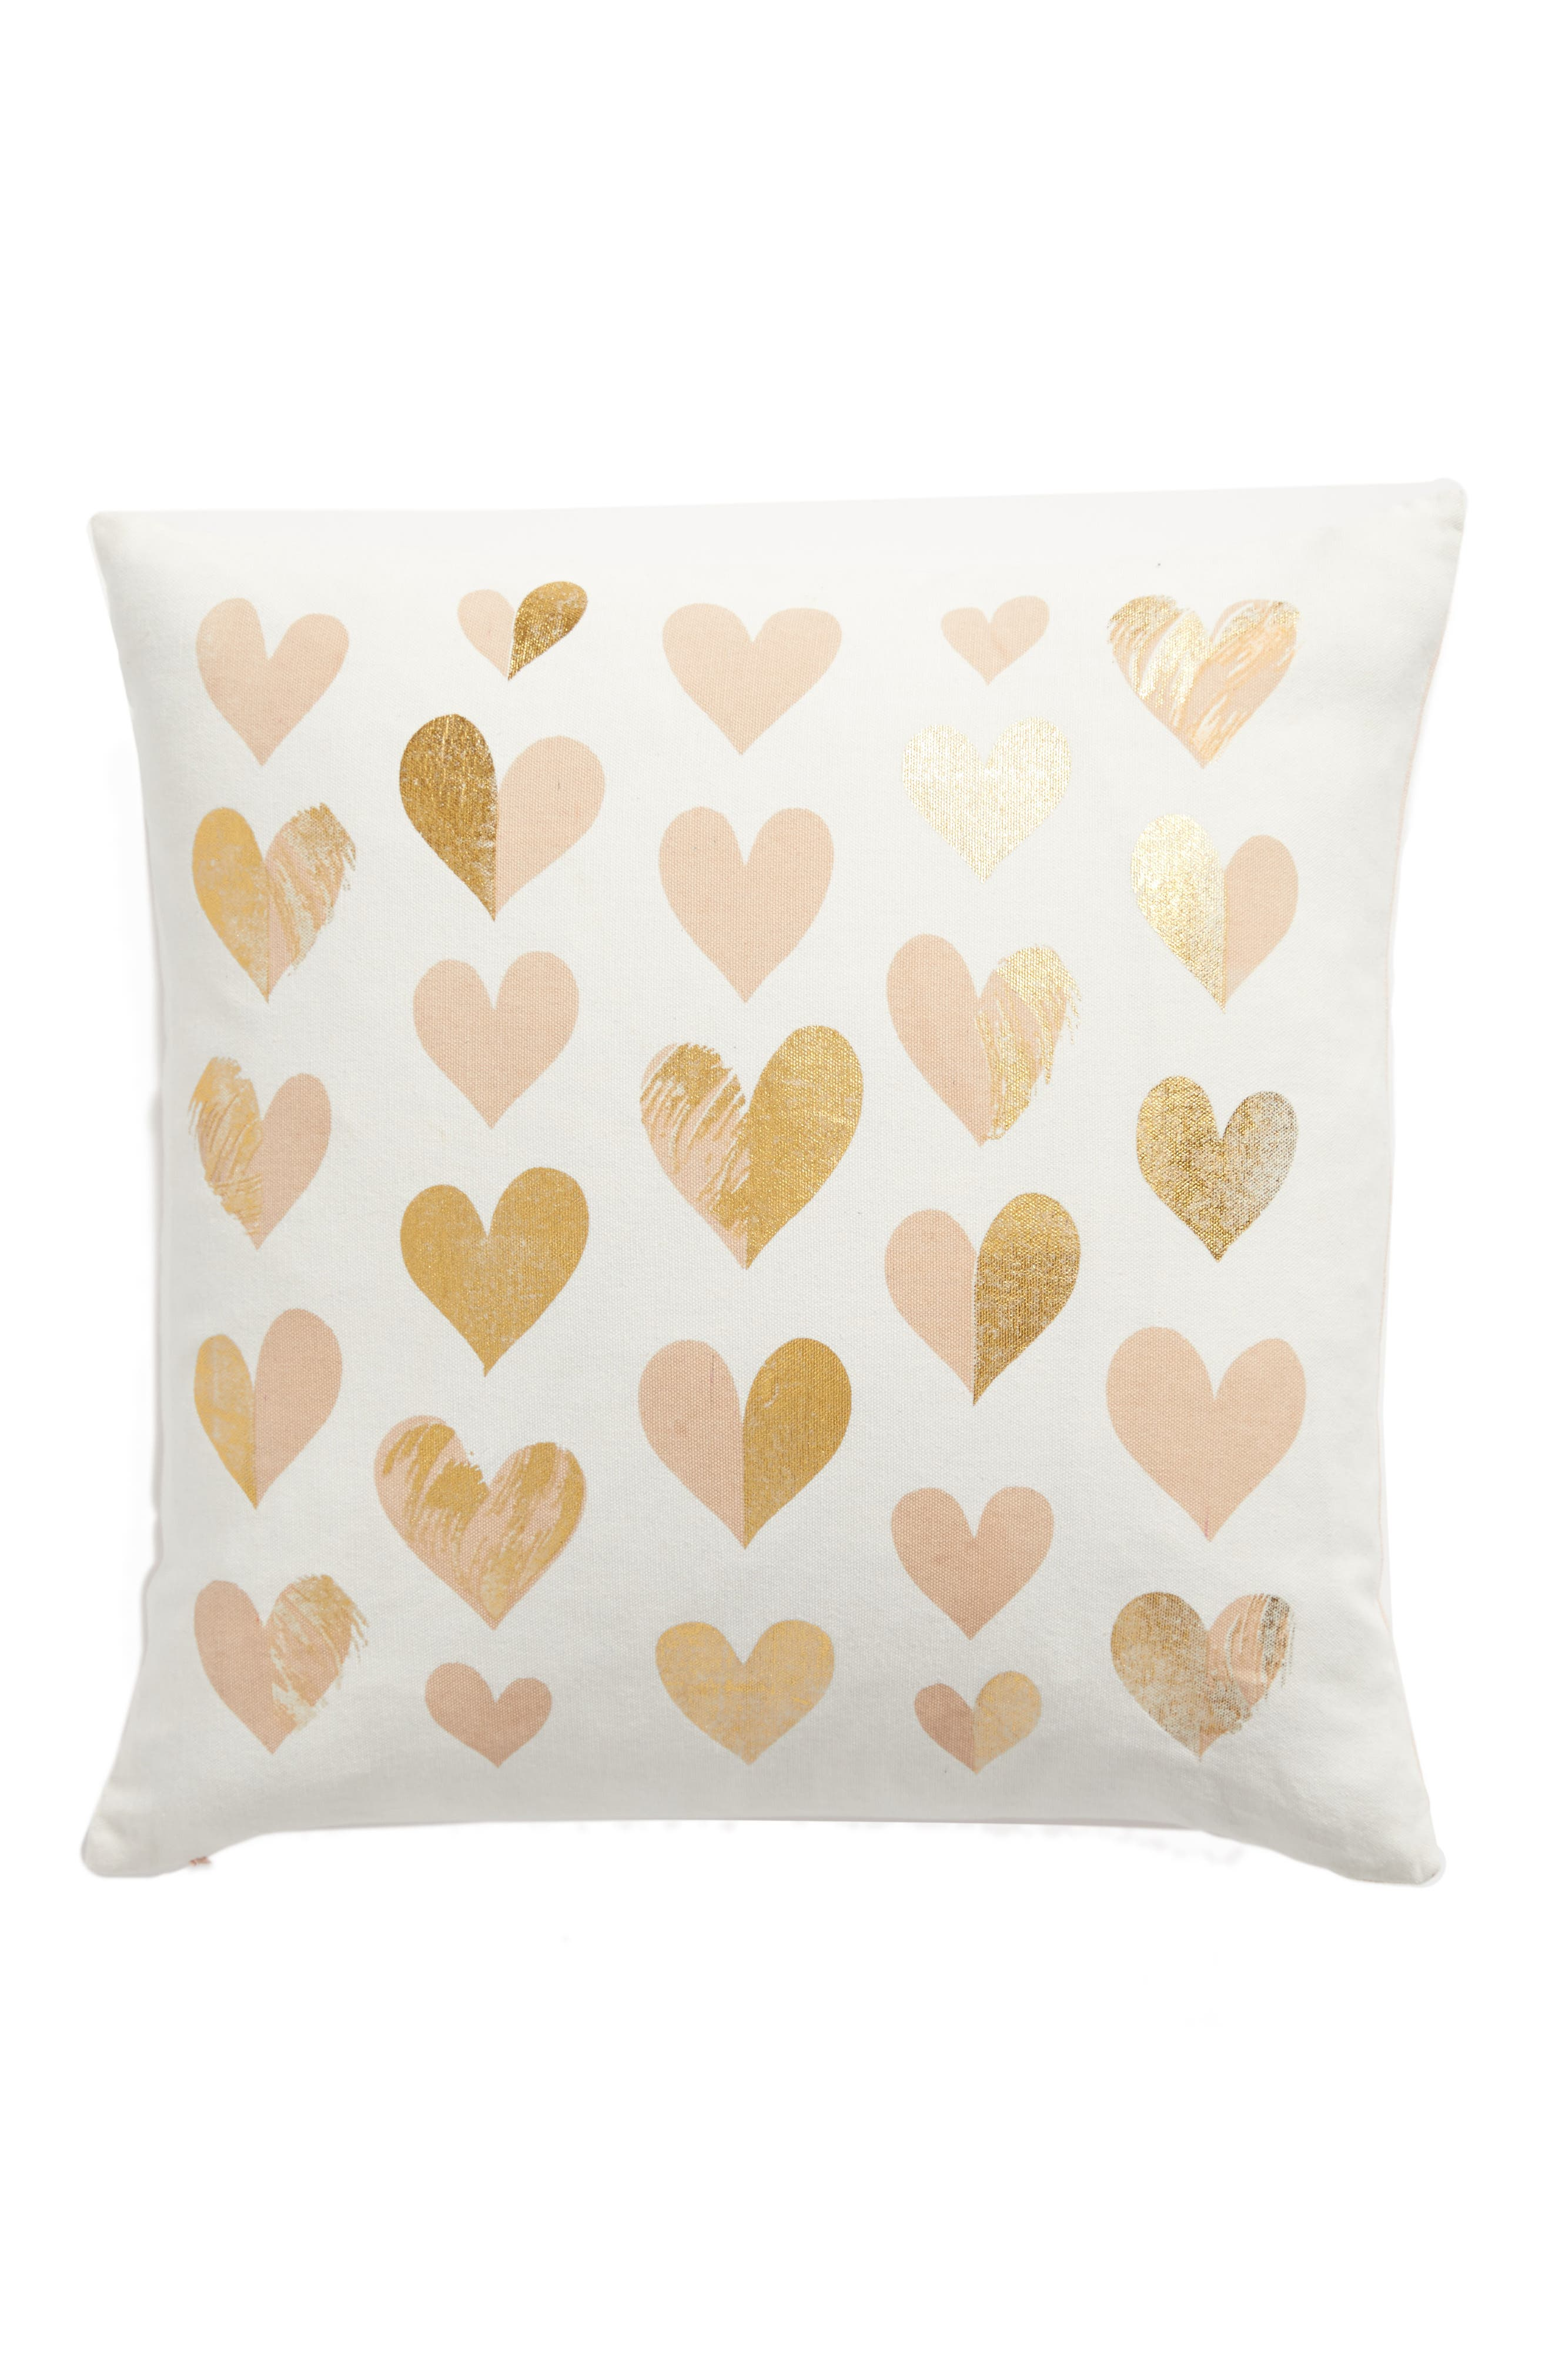 Alternate Image 1 Selected - Nordstrom at Home Lots of Love Accent Pillow